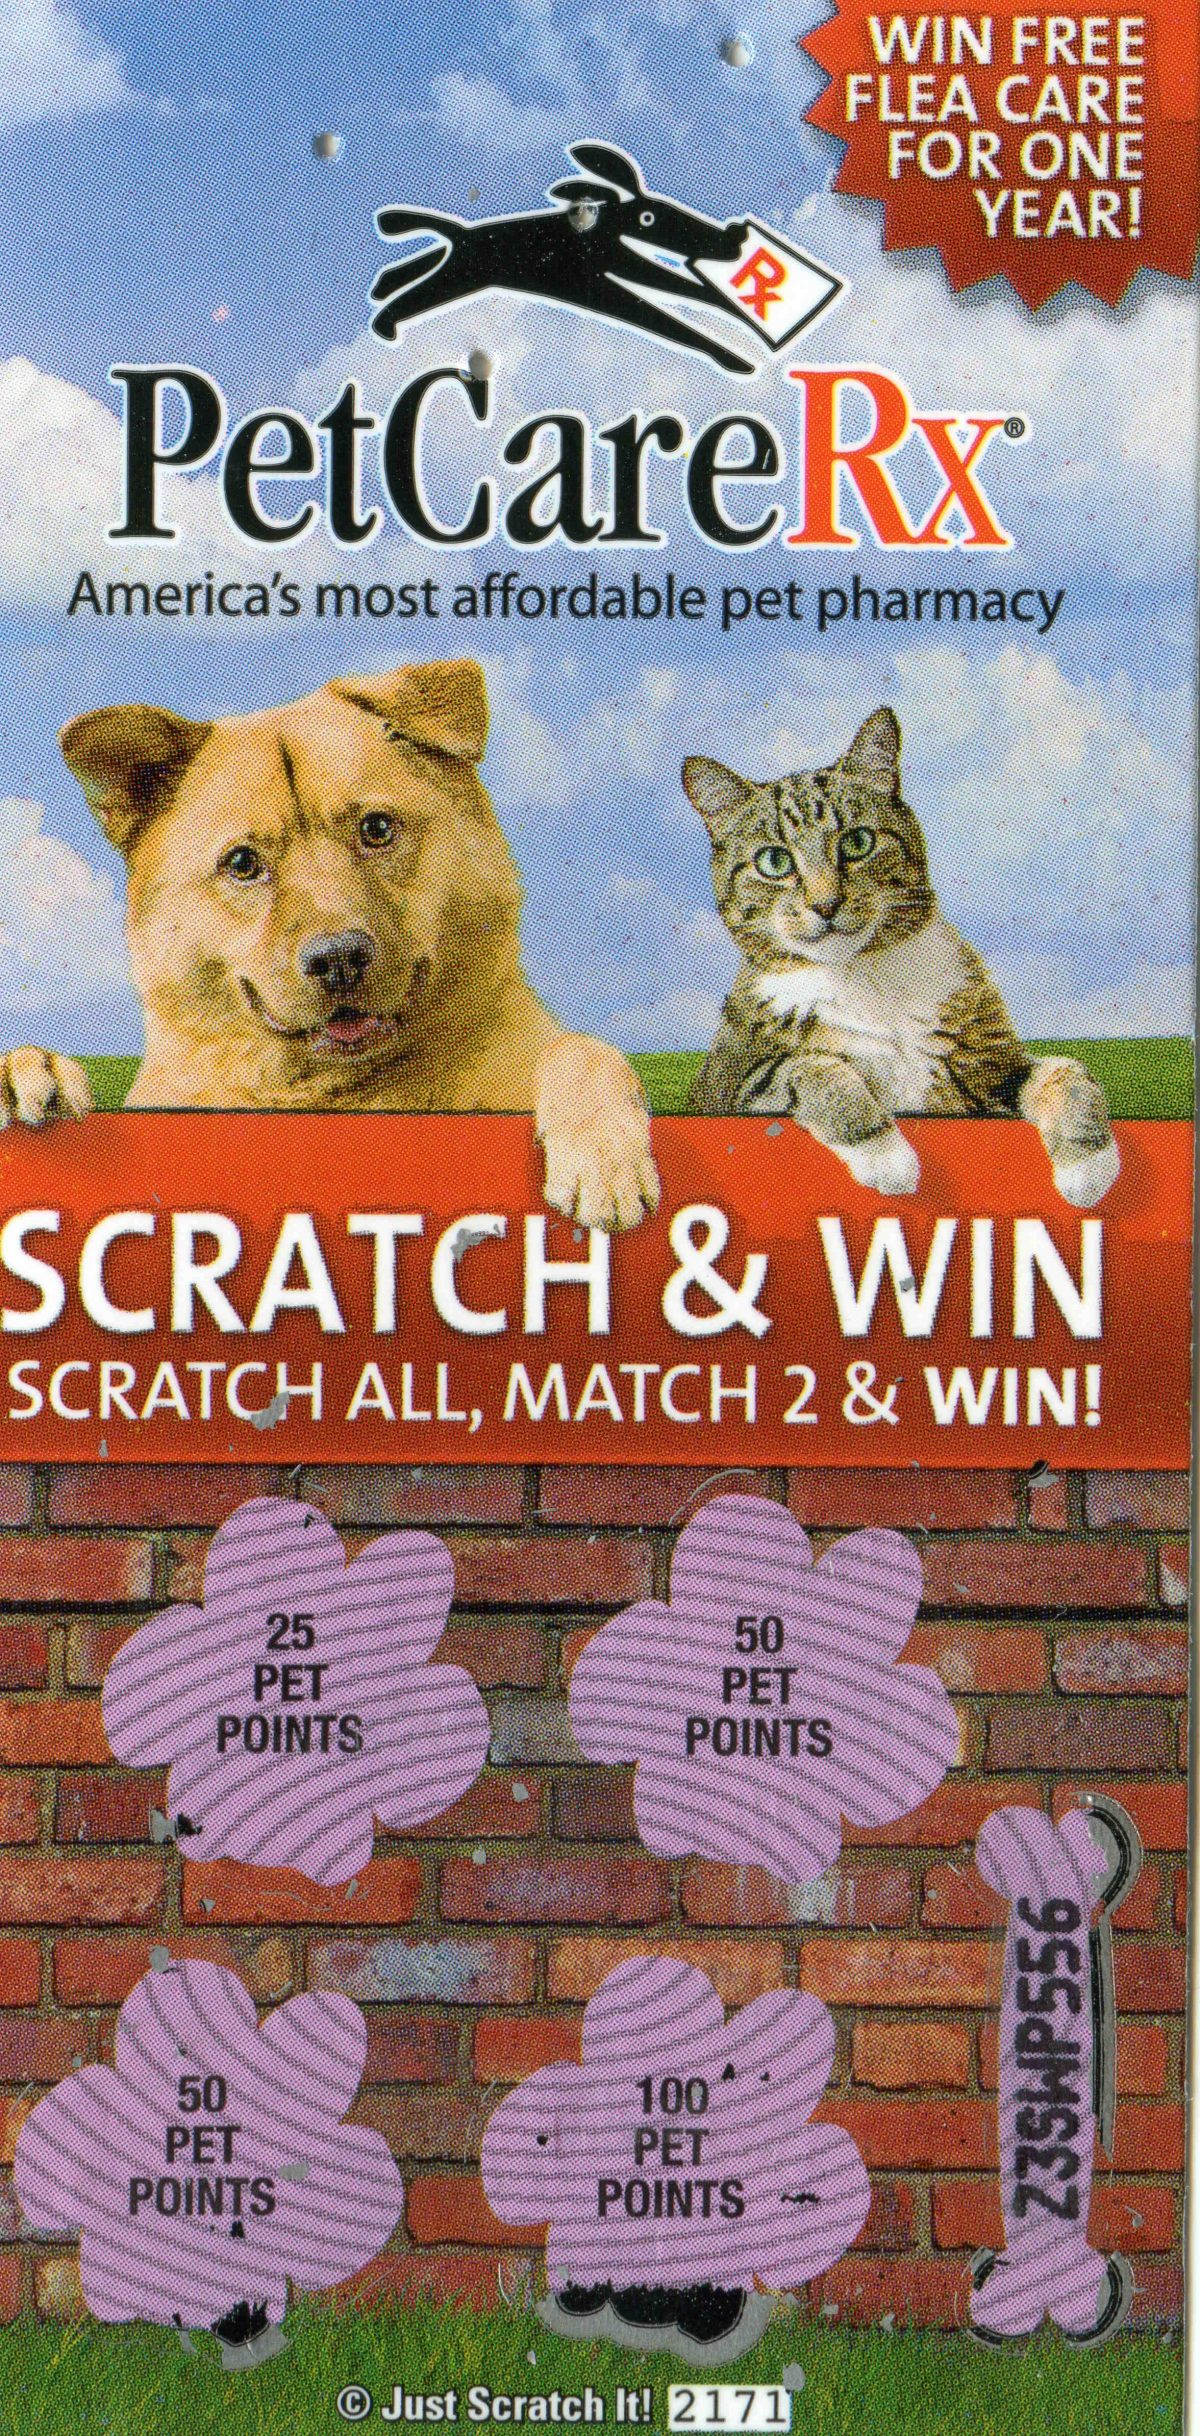 Scratchers - Store promotion from from PetCareRx